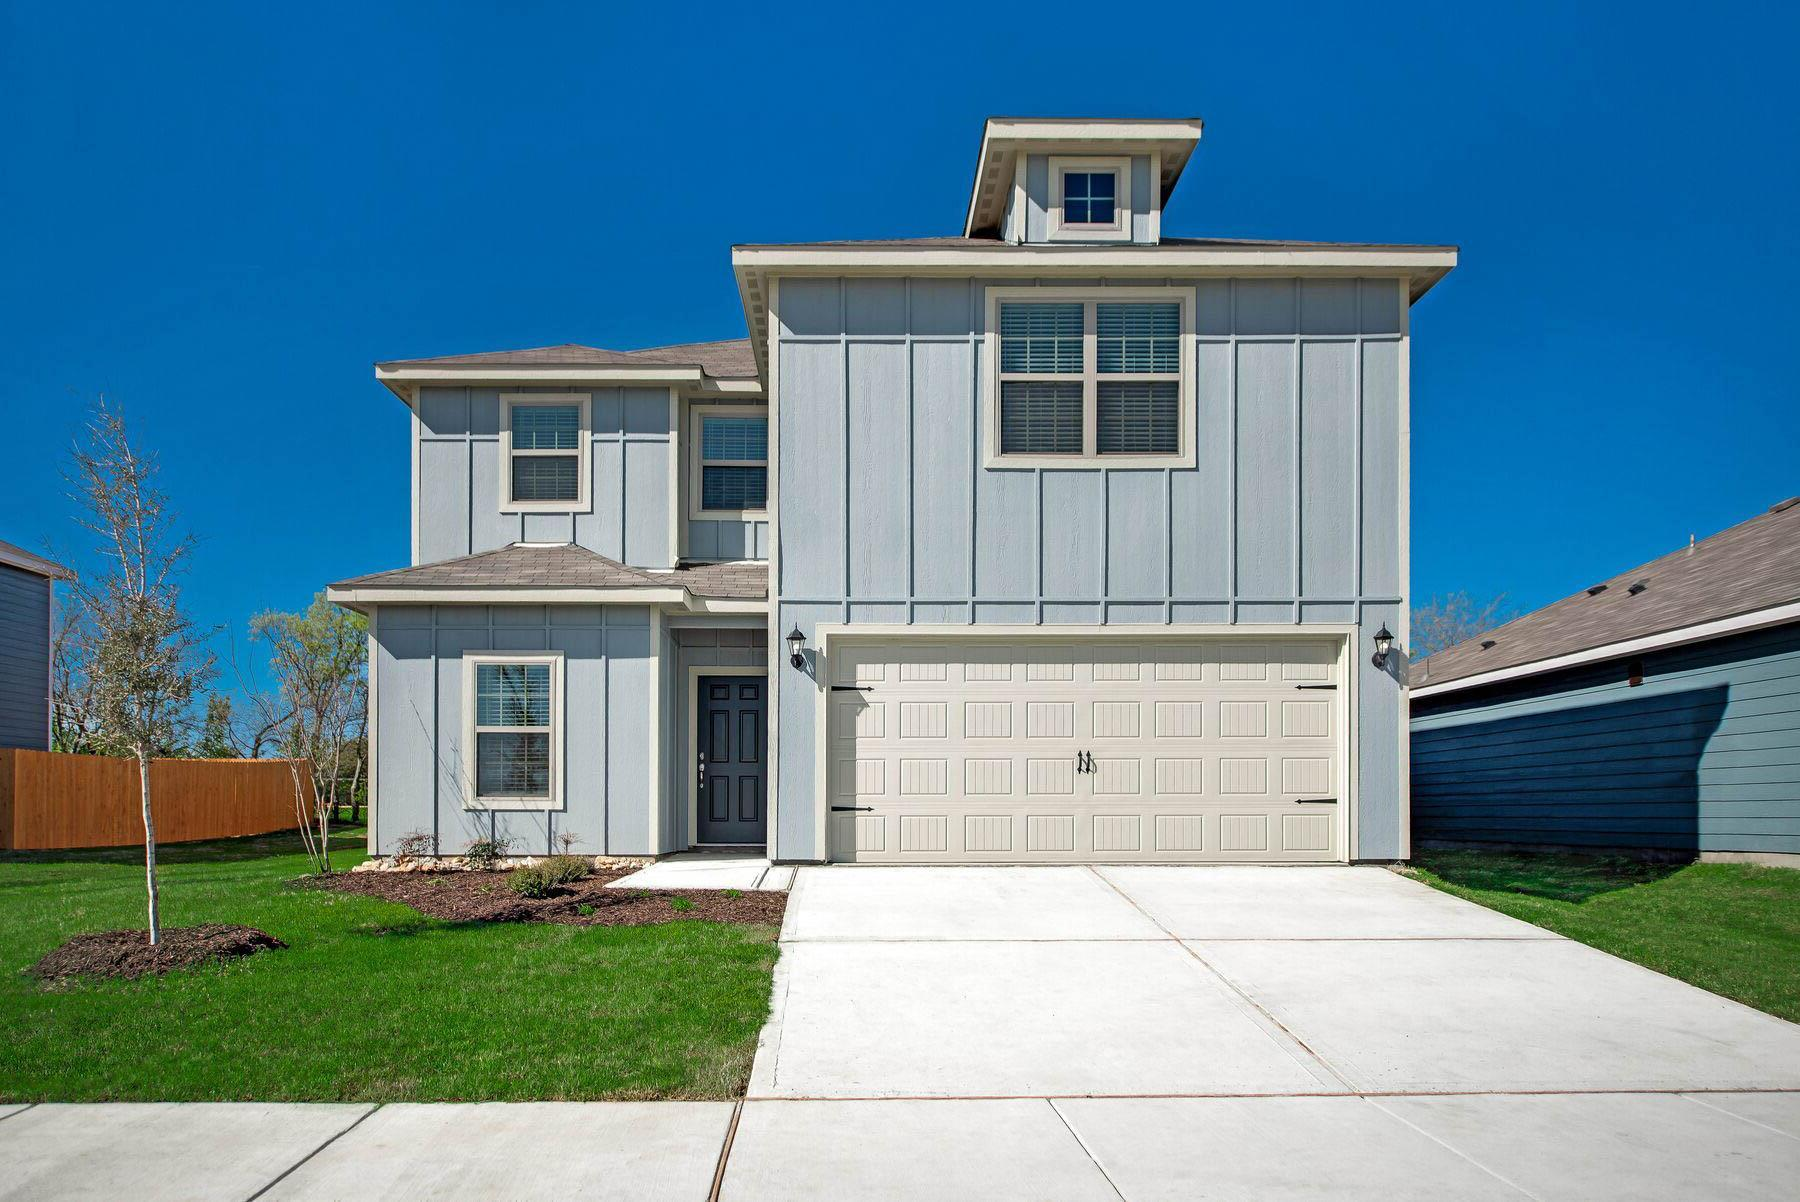 The Driftwood by LGI Homes:The Driftwood is a spacious two-story home within the community of Quarter Horse Estates.